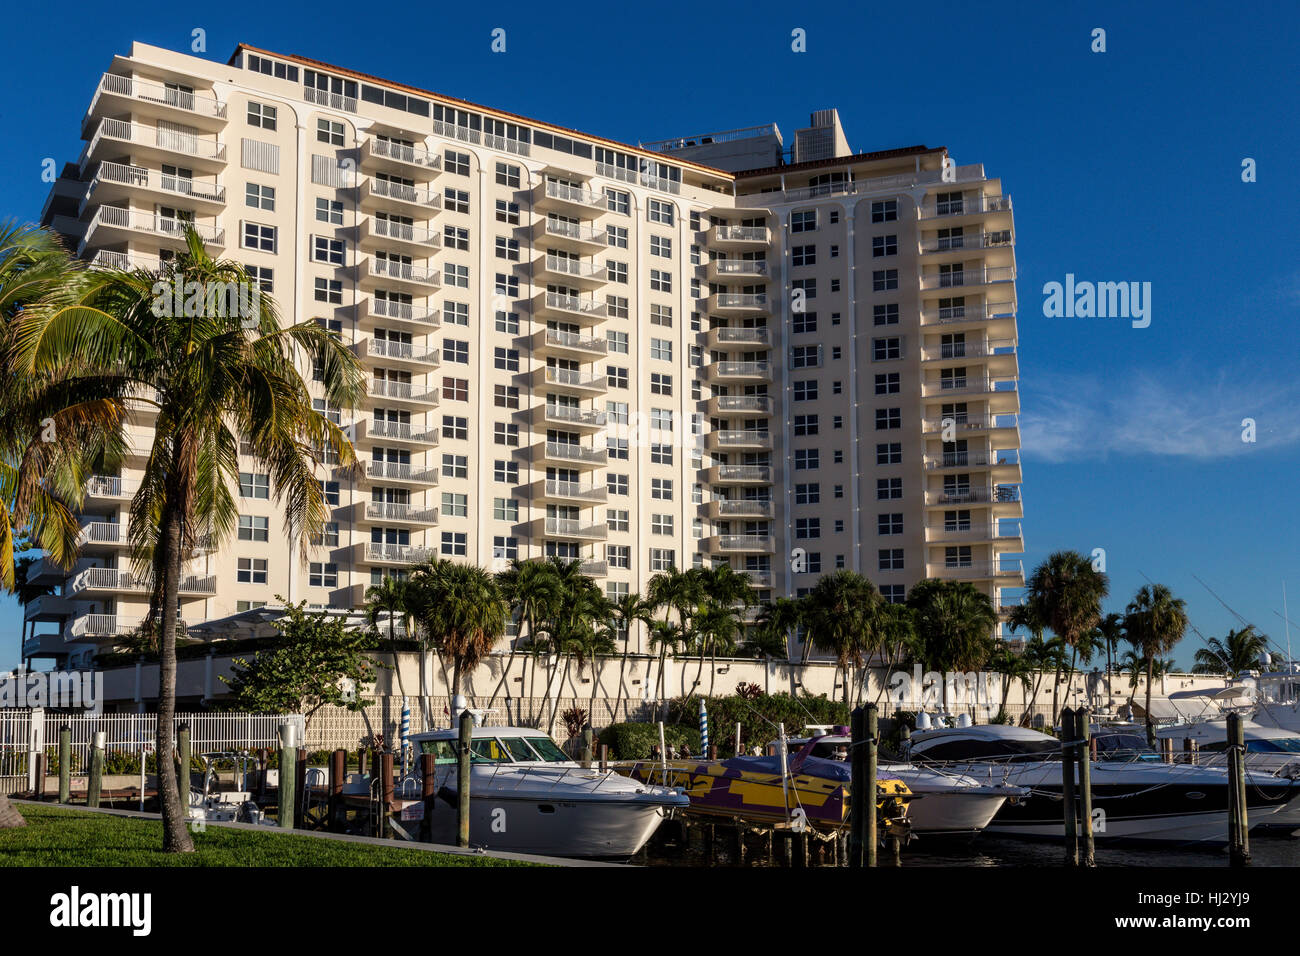 Lovely Luxury Condo Living, Fort Lauderdale, FL, USA